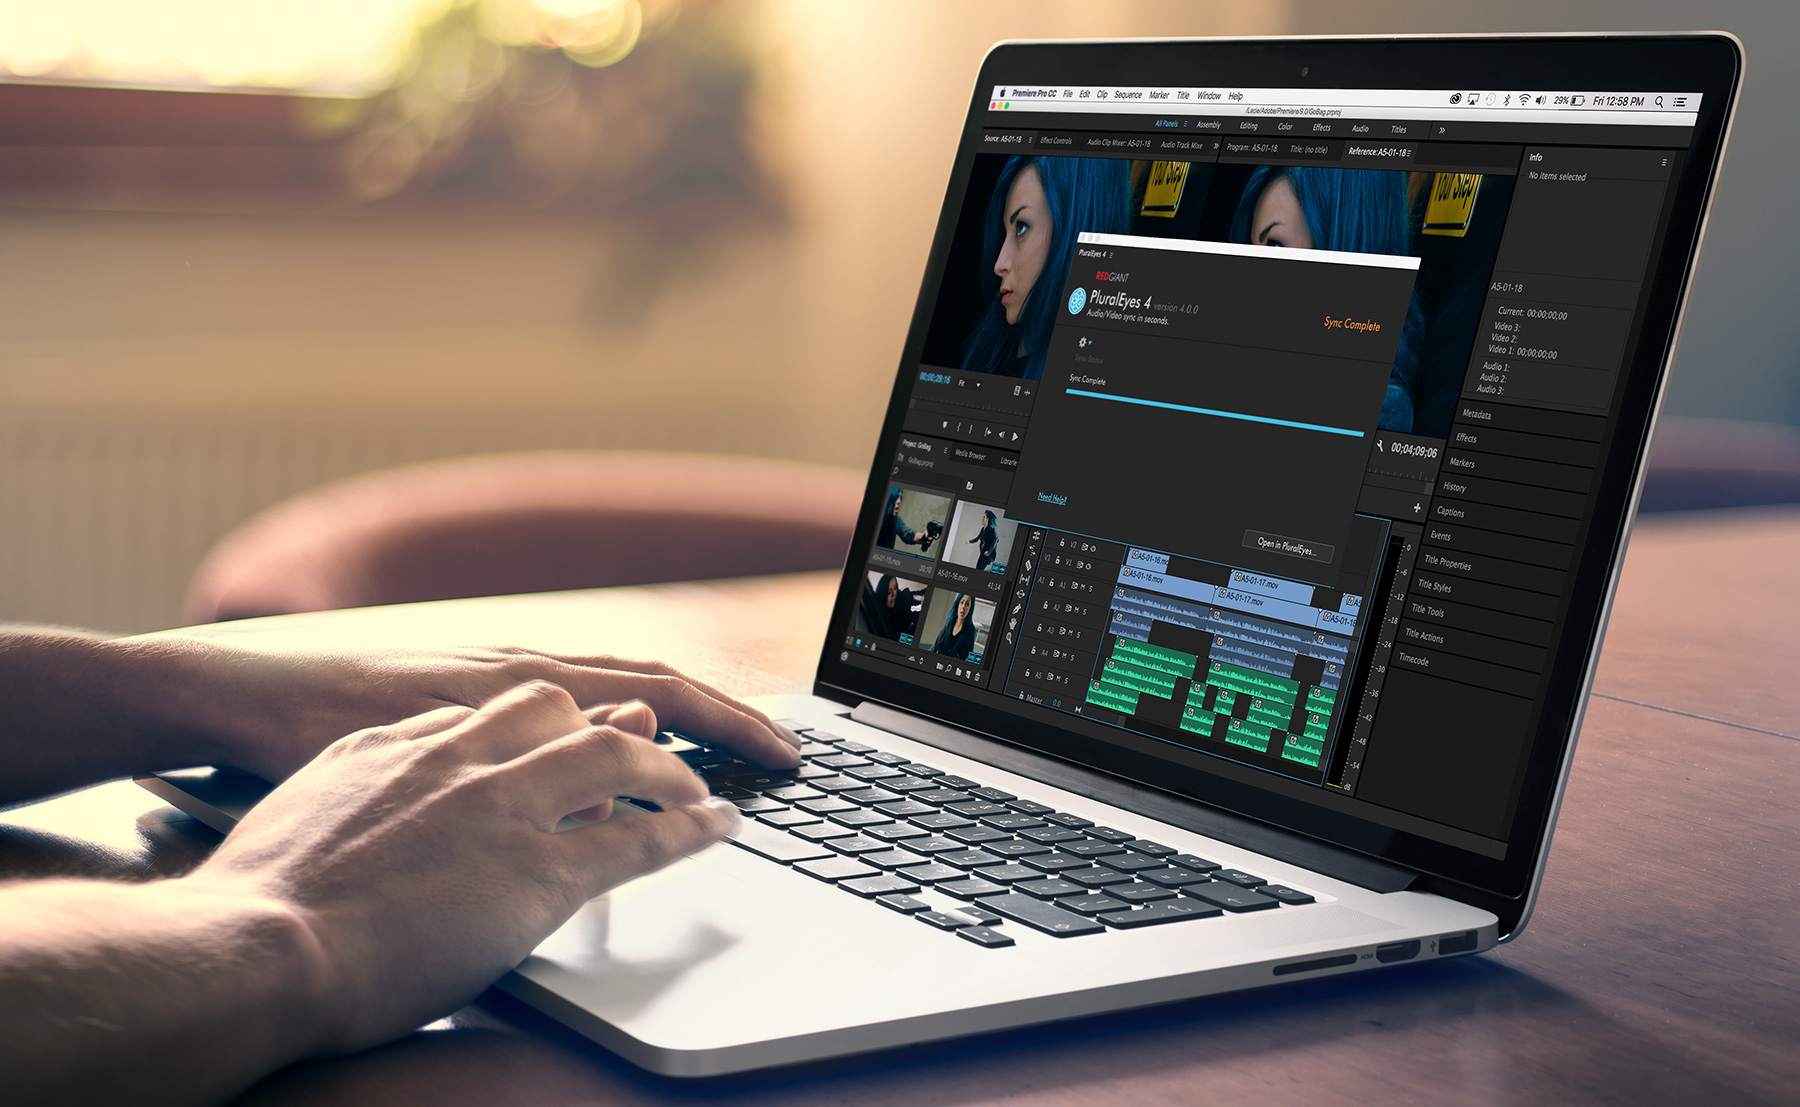 Red Giant offers powerful plugins and extensions for Premiere Pro and After Effects